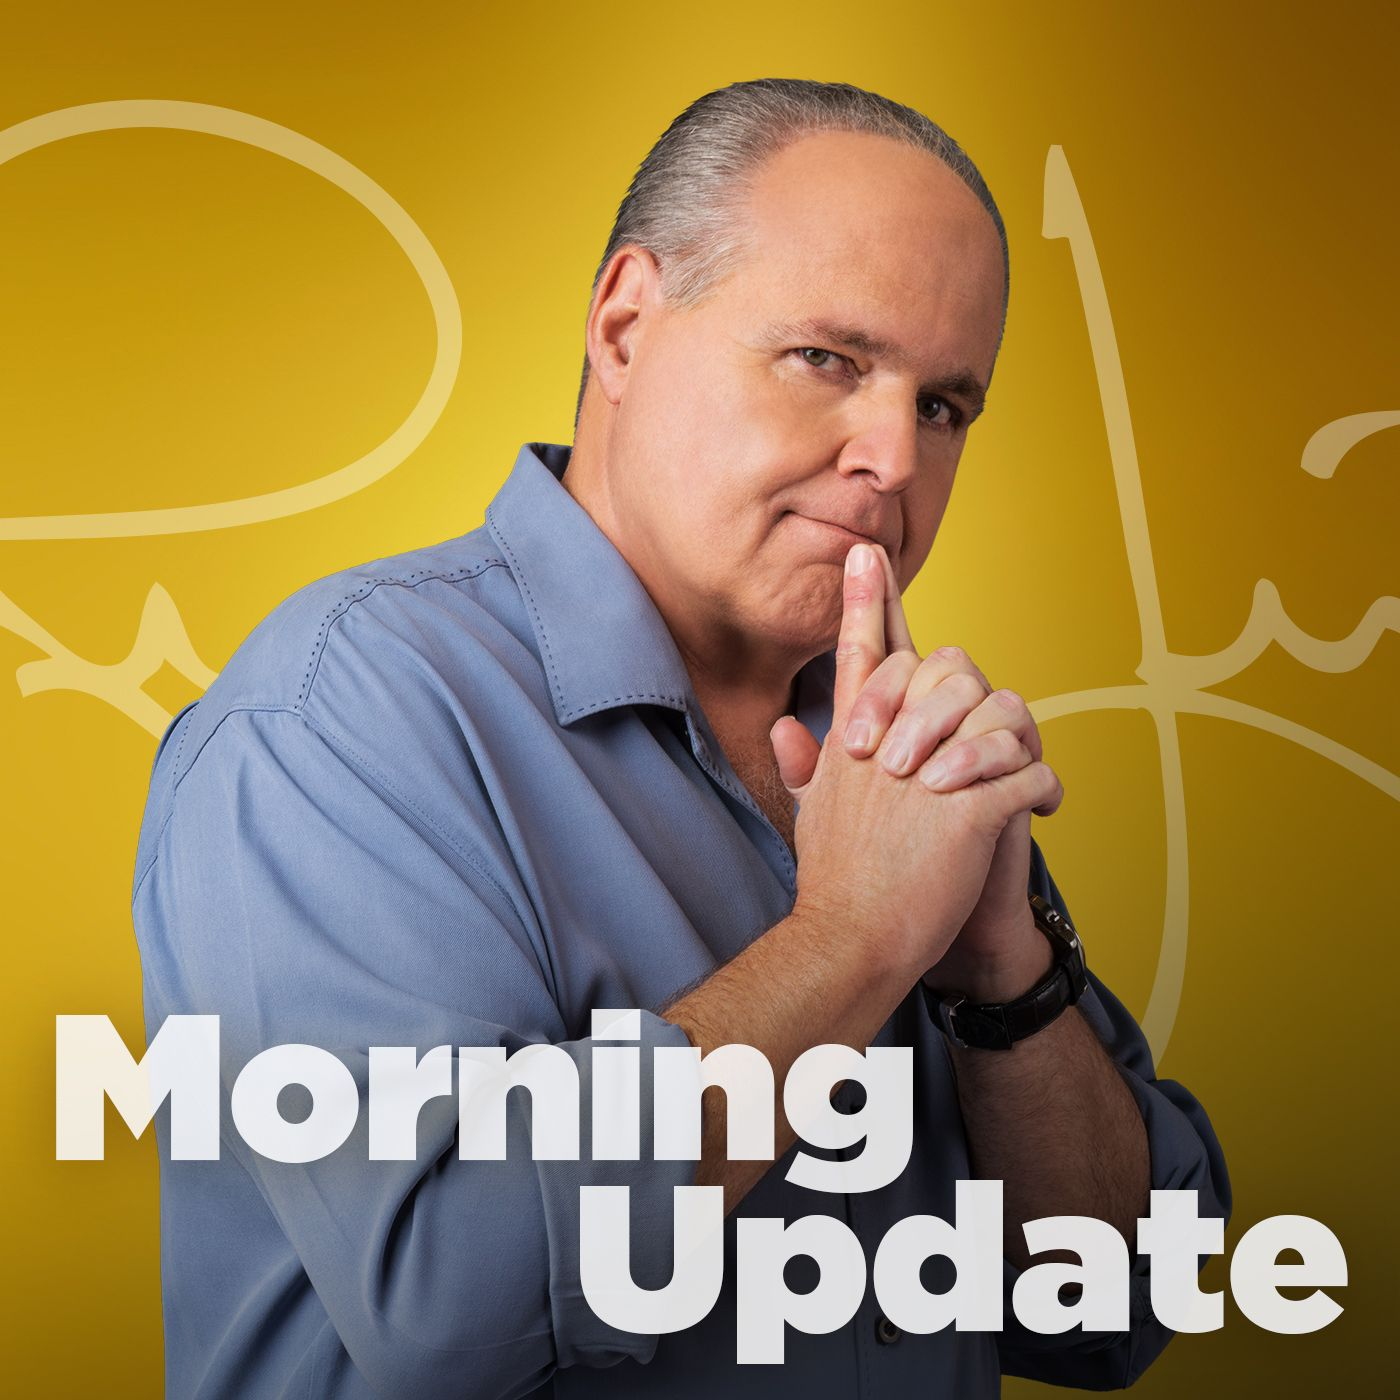 Rush Limbaugh Jul 01, 2020